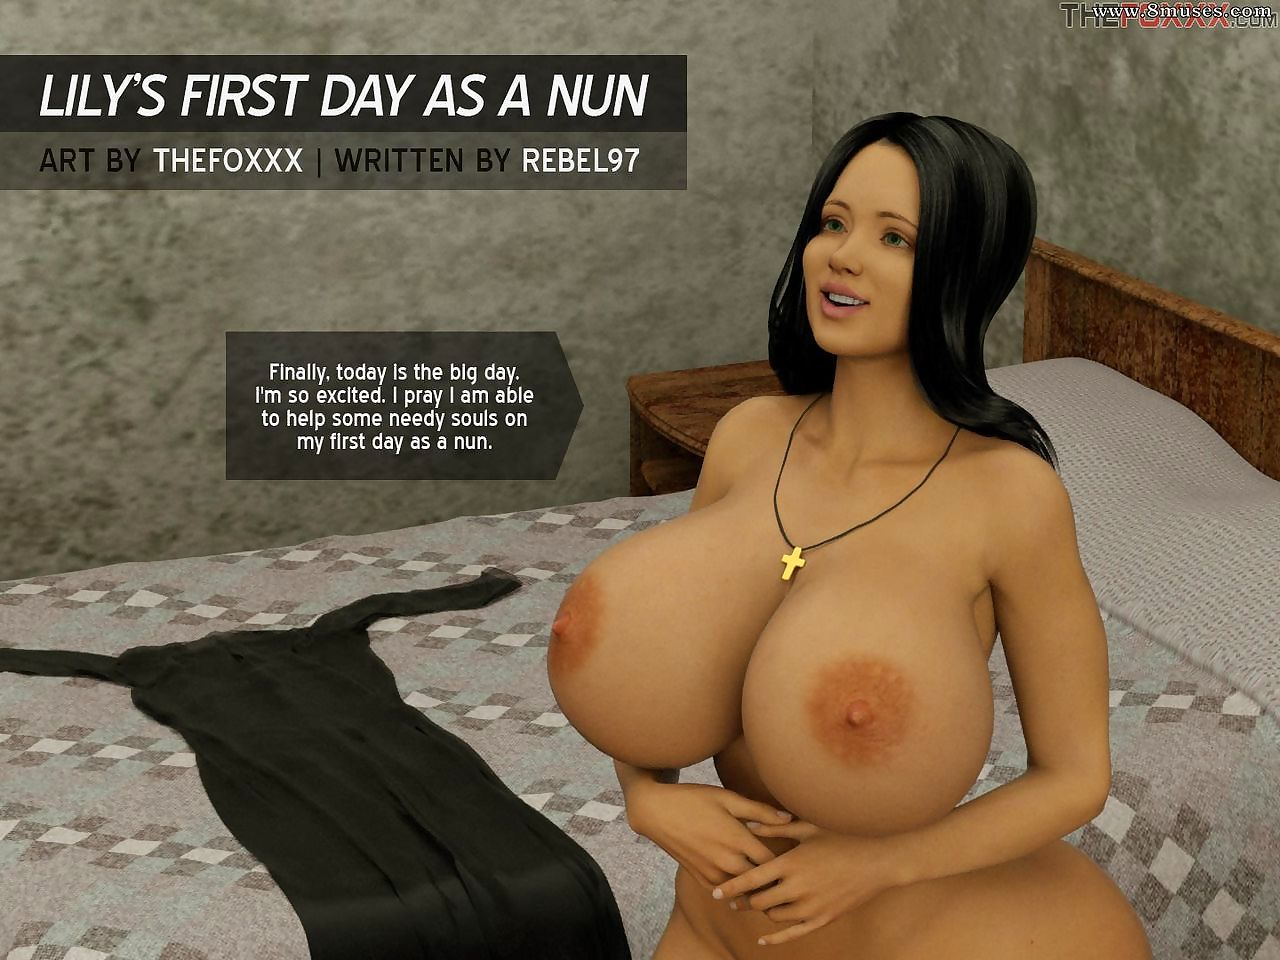 Be transferred to FOXXX - Lilys Cunning Make obsolete painless a Nun